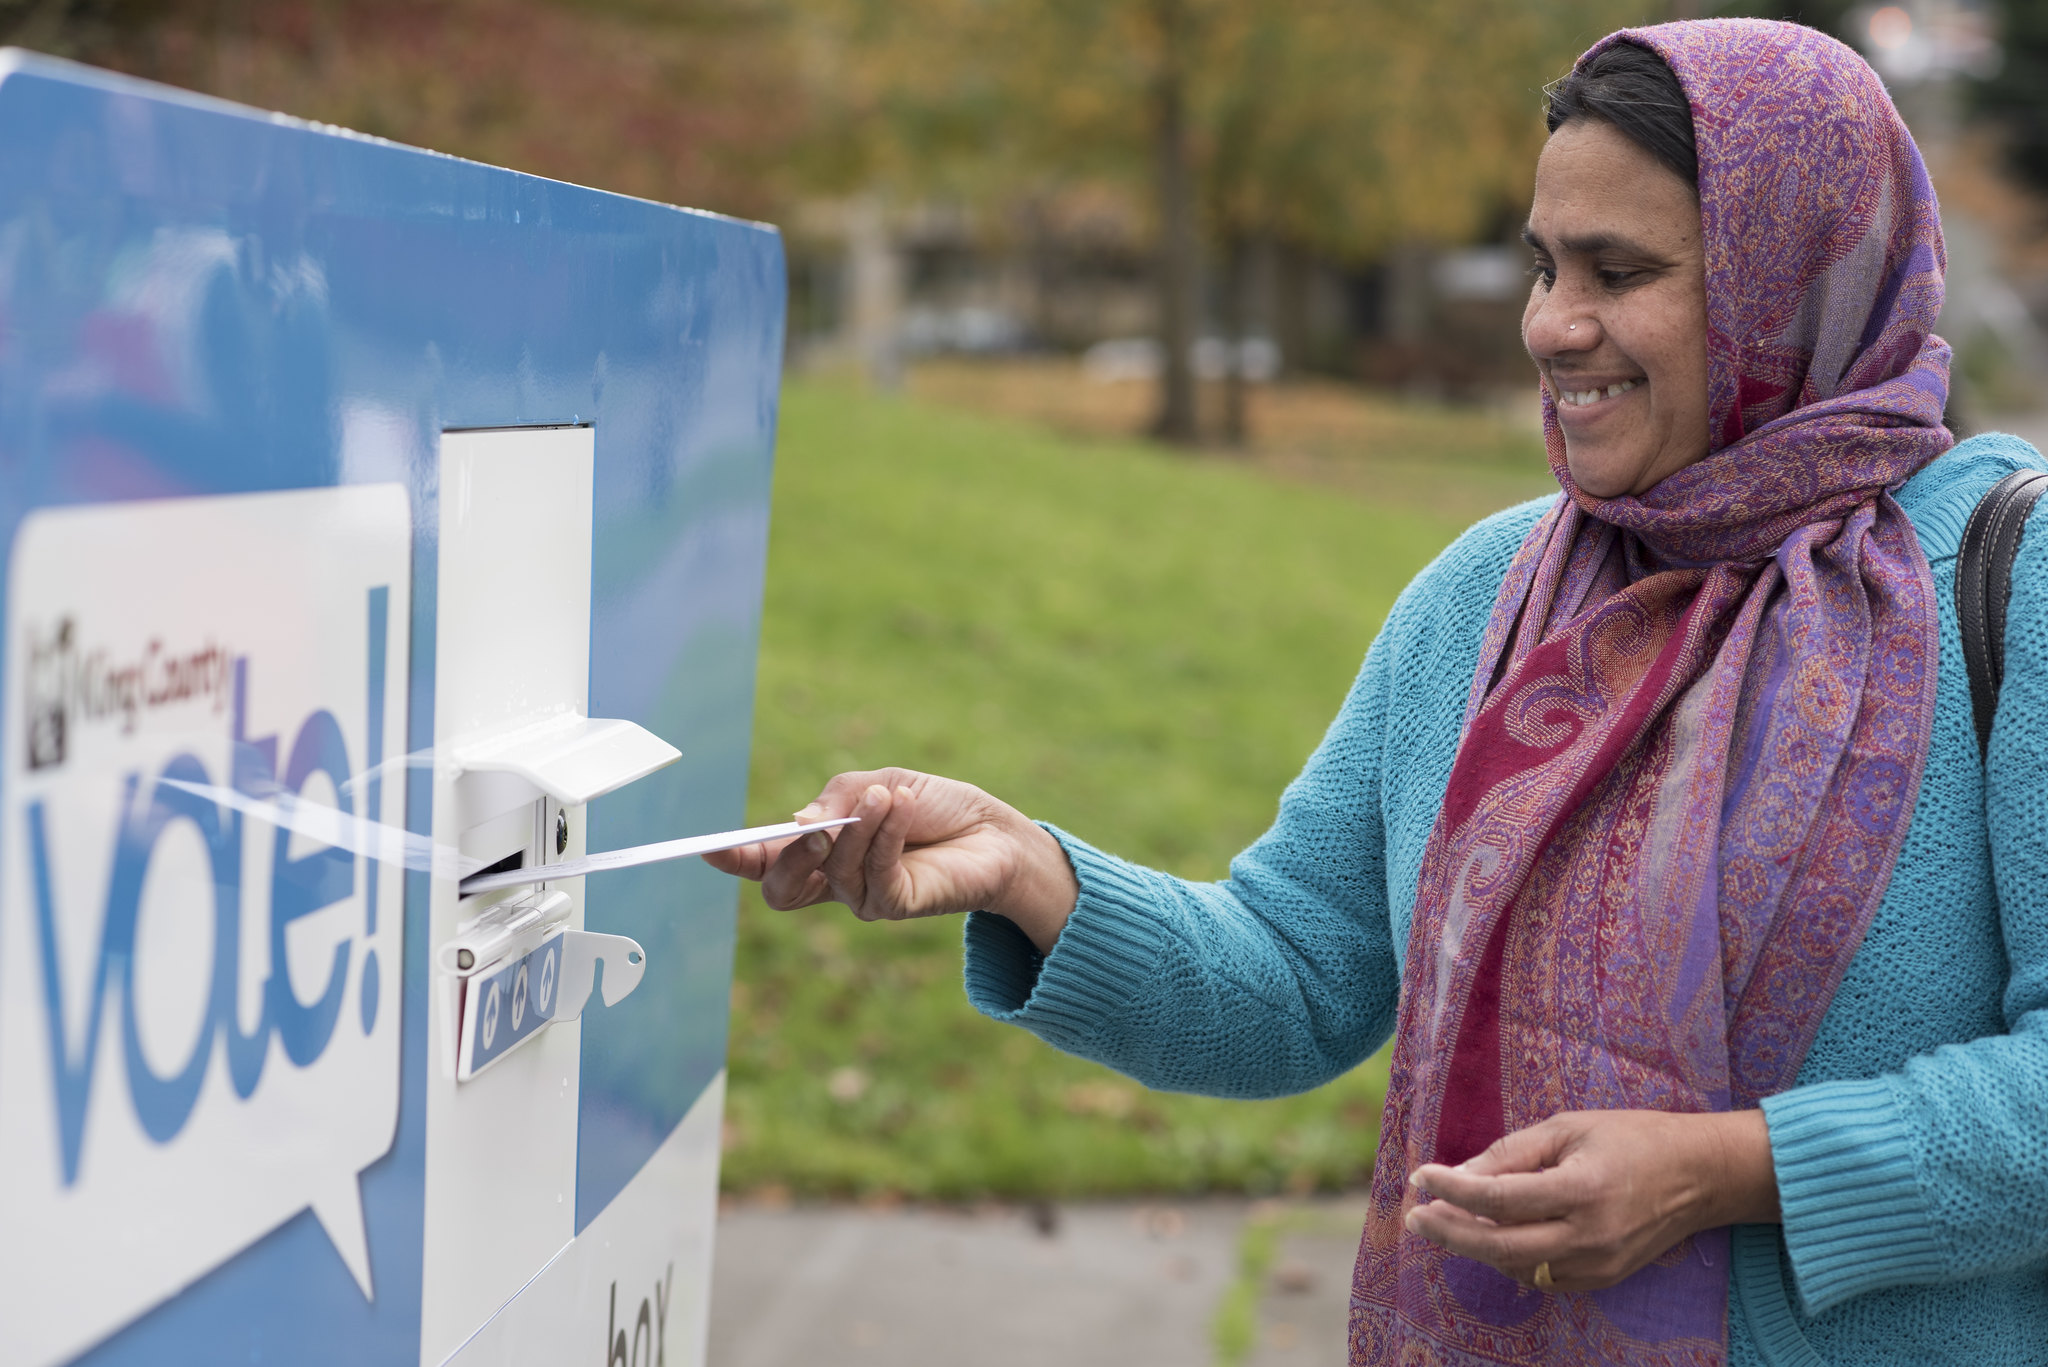 Vote, elections: using ballot drop box 15